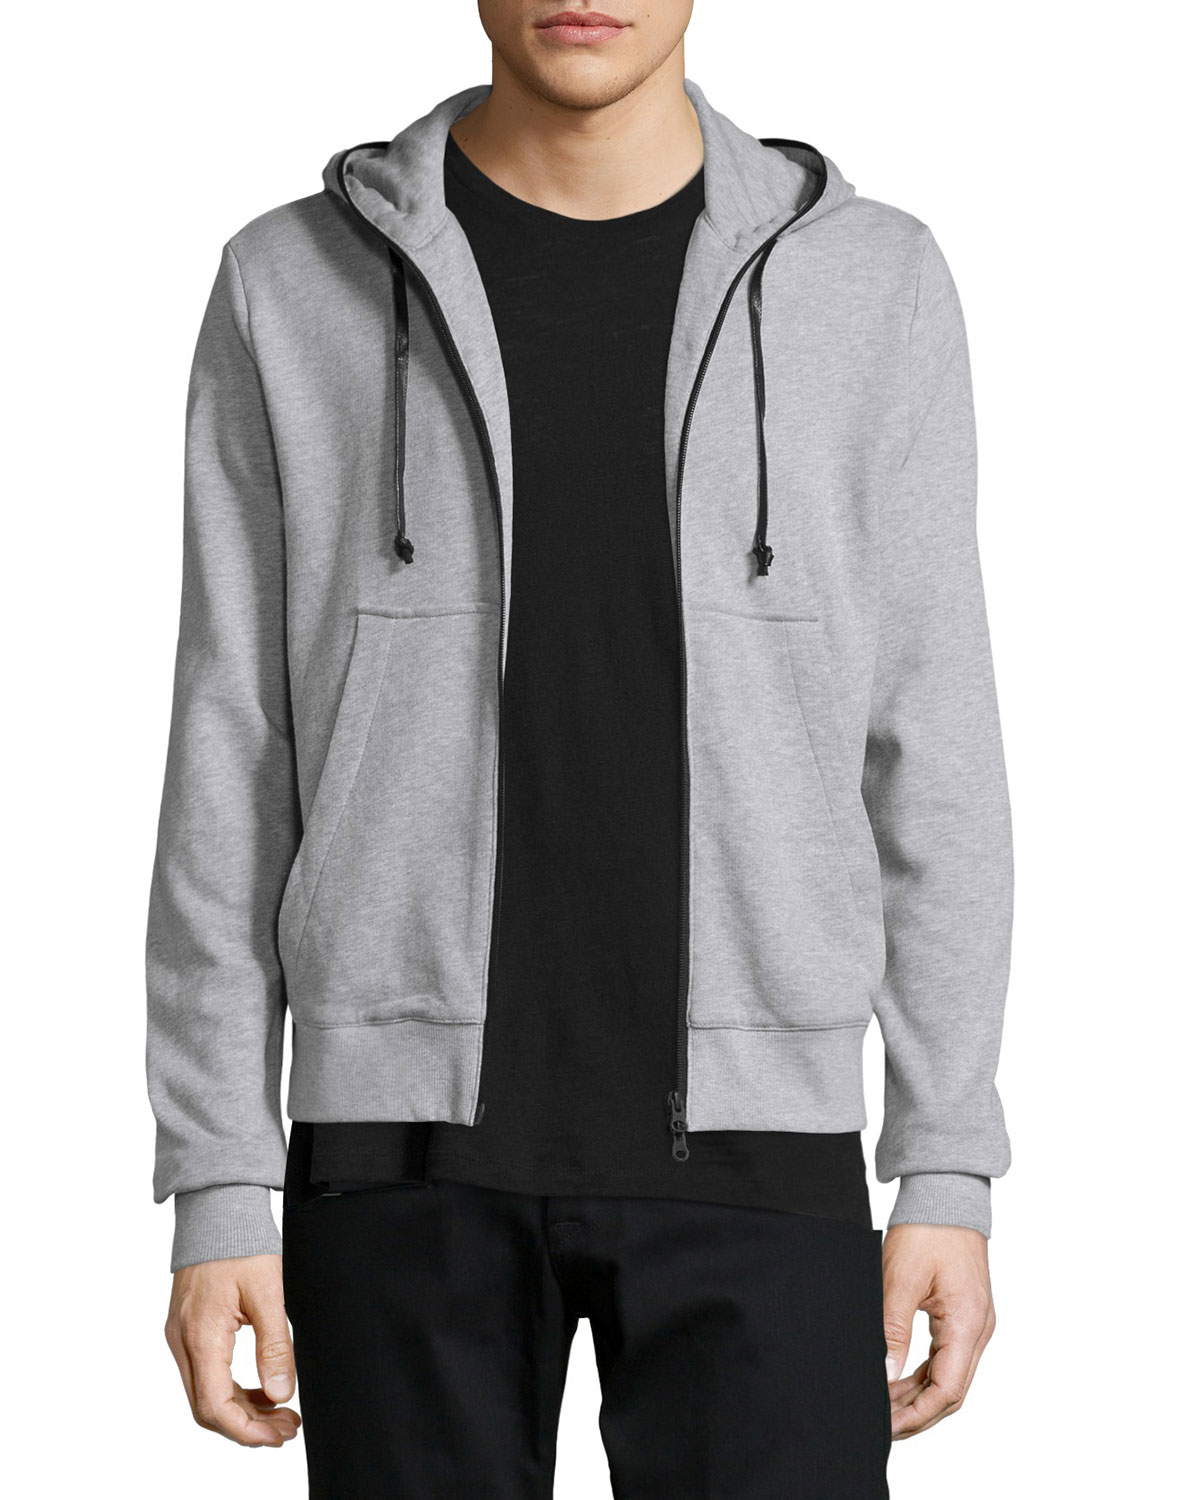 lyst hudson jeans reed inversion hoodie in gray for men. Black Bedroom Furniture Sets. Home Design Ideas